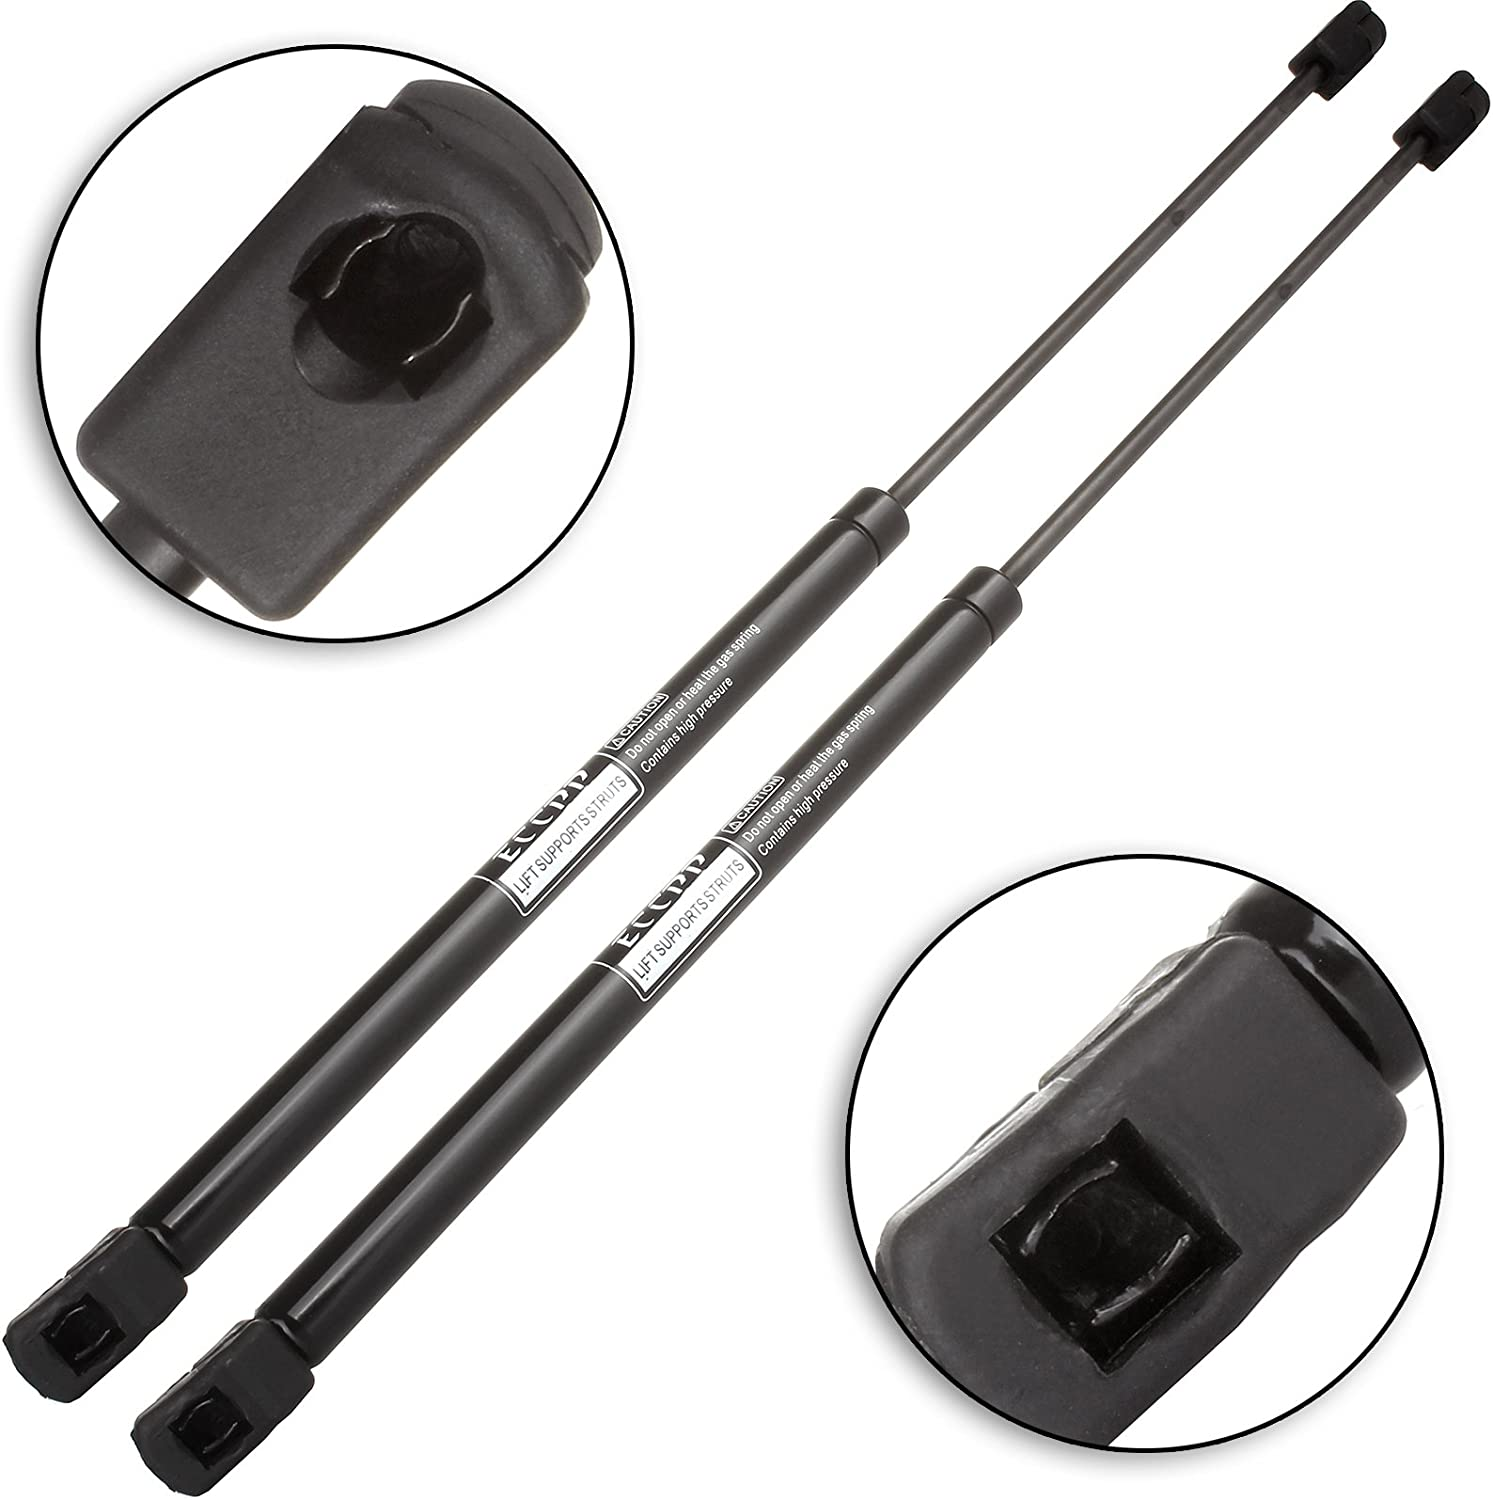 4 Hood and Window Lift Supports Struts Replacement fit for 1997-2002 Replacement fit ford Expedition cciyu Qty